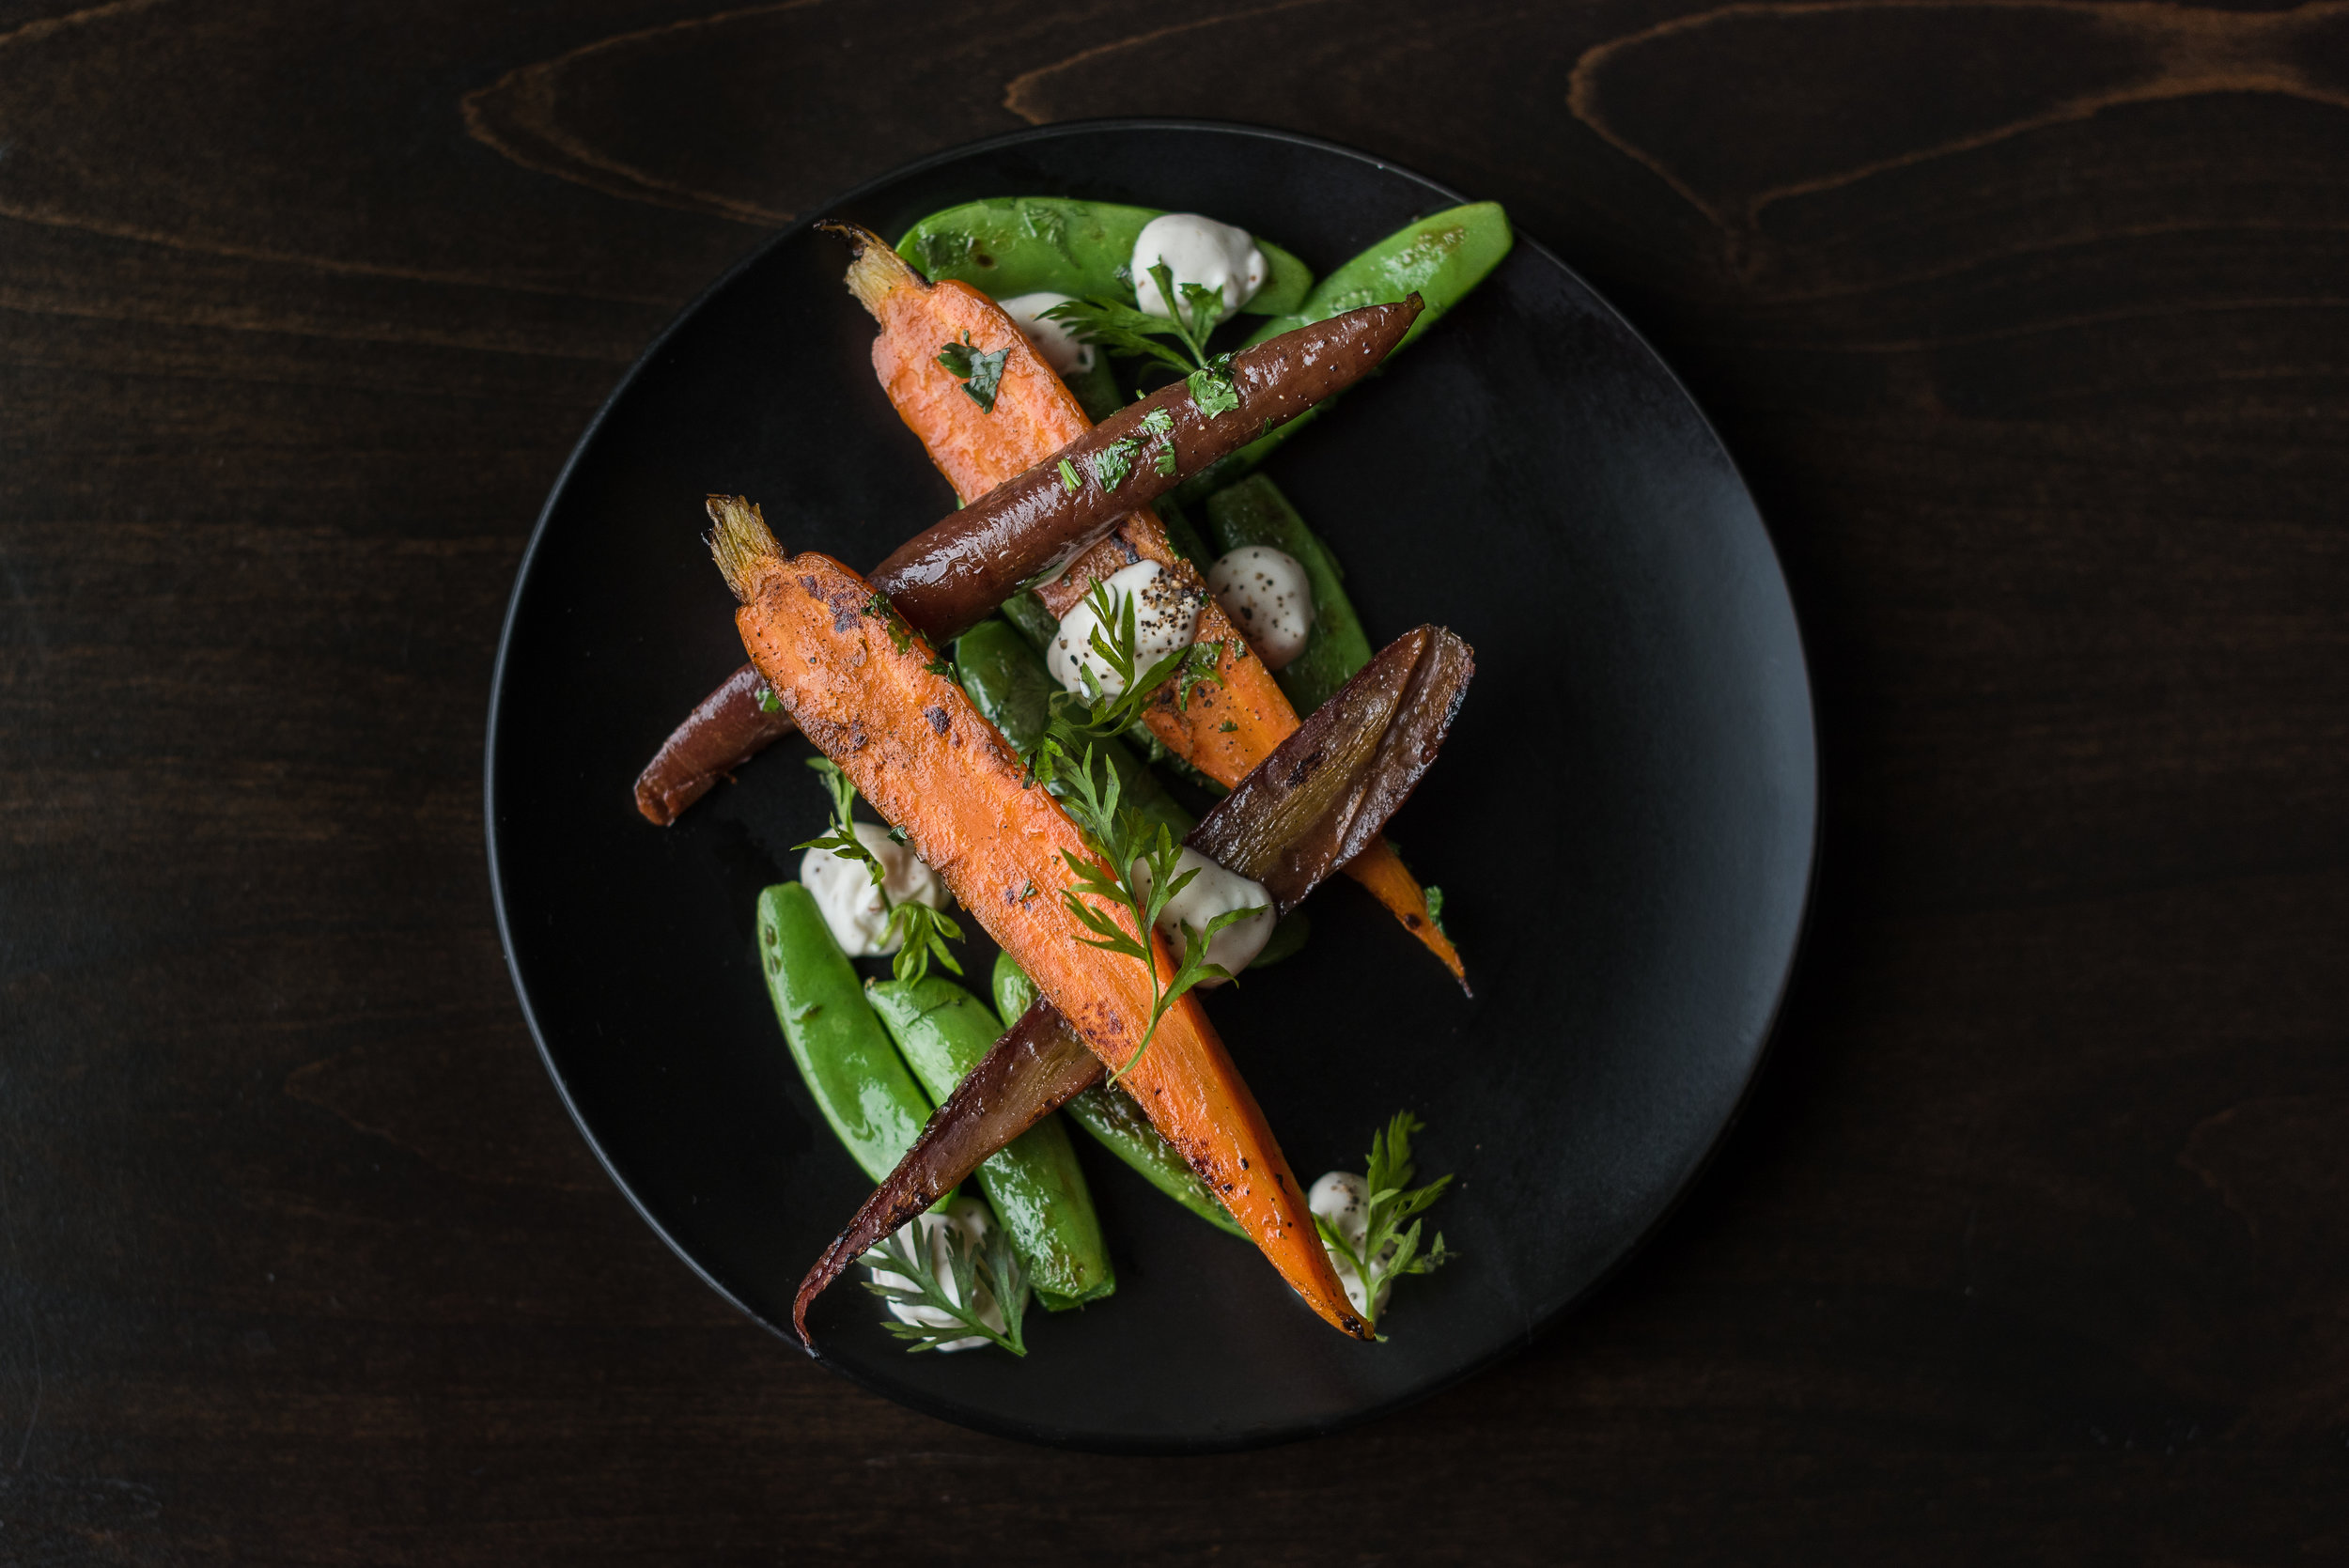 Grilled carrots and peas with cilantro, charred orange and spiced cream